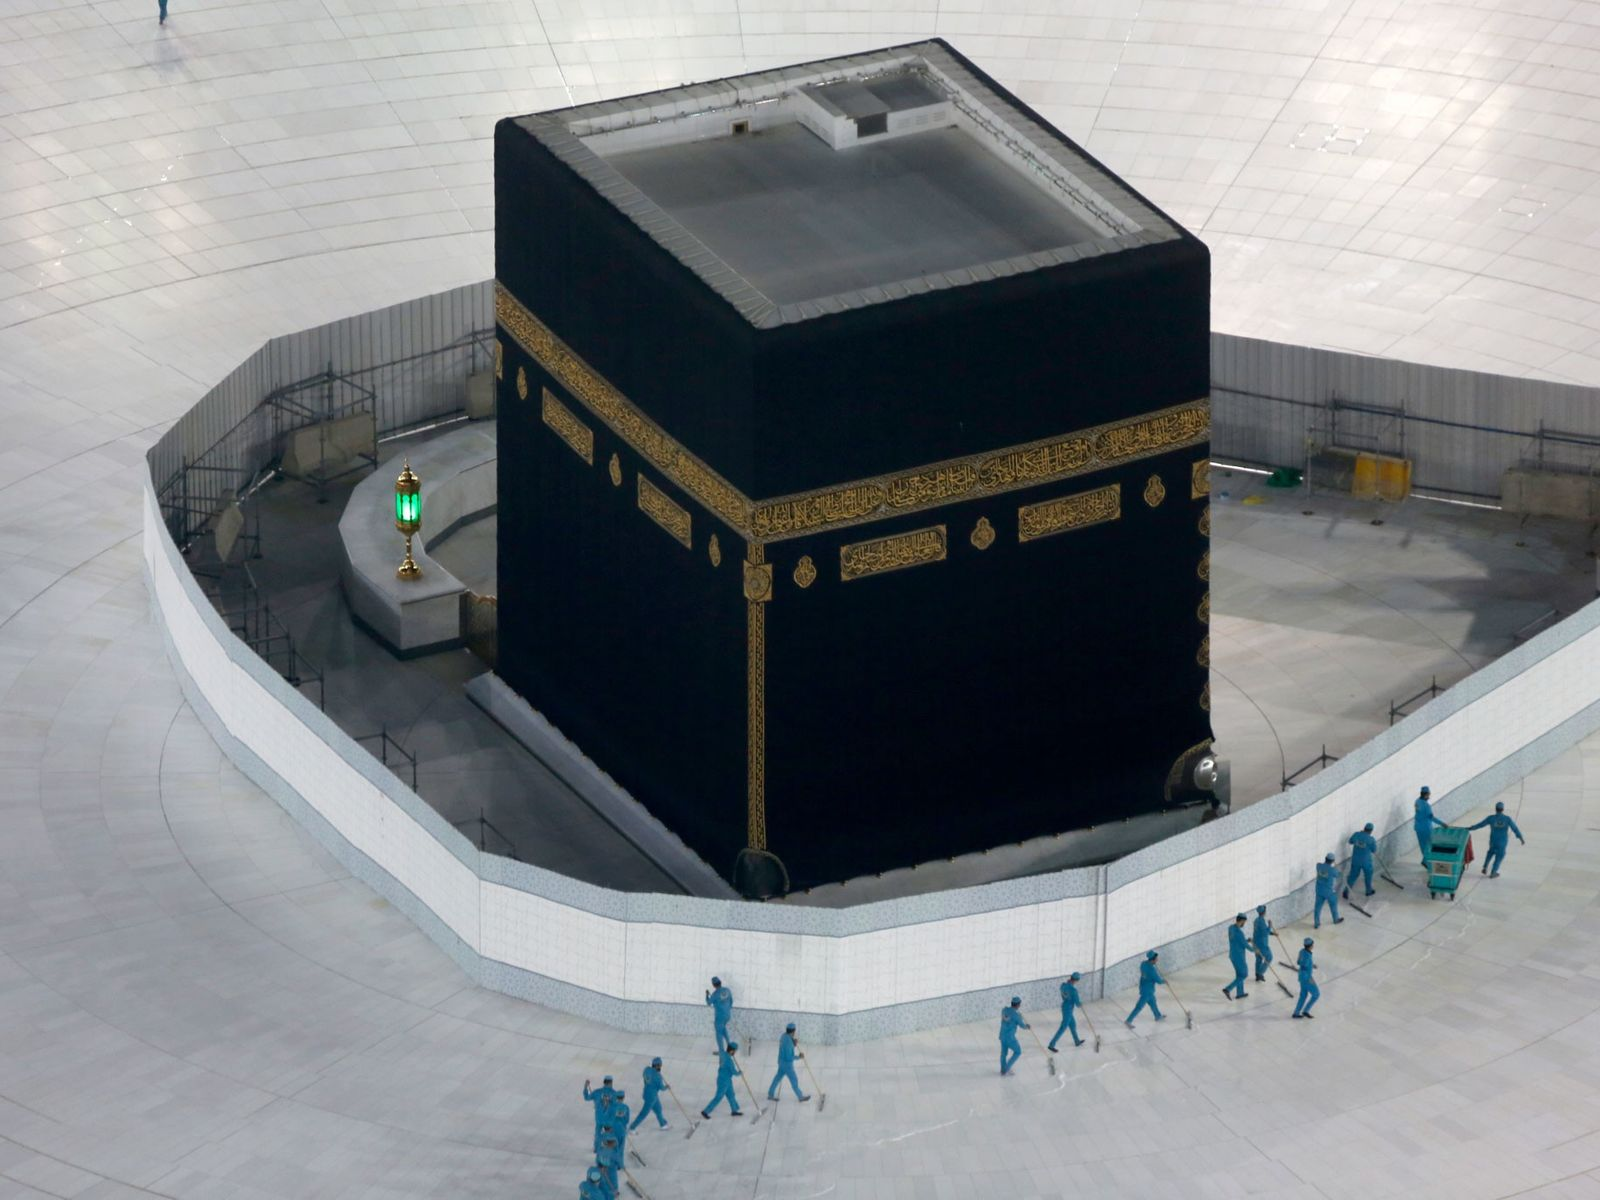 Workers disinfect the plaza around the Kaaba, the holiest site in Islam, at the Grand Mosque ...